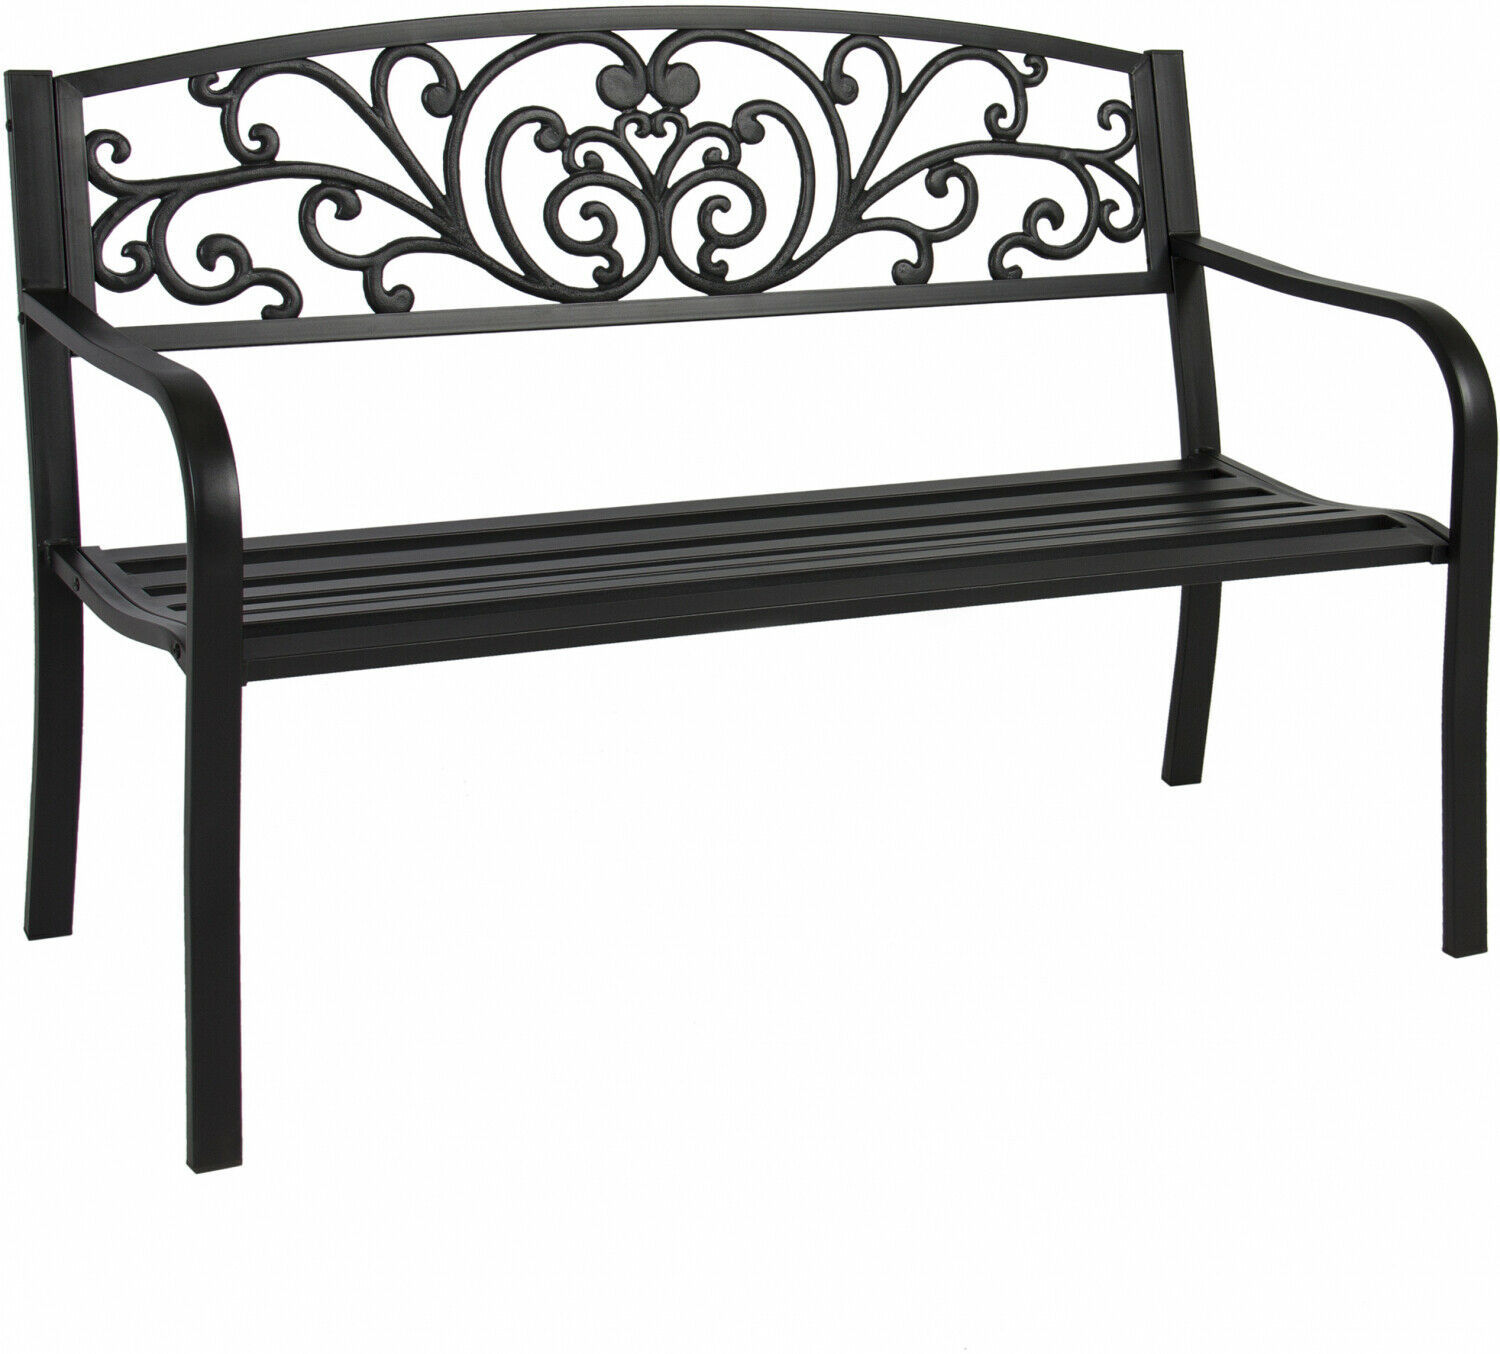 Outdoor Park Bench Porch Chair Yard Furniture Slatted Seat Garden Patio Black